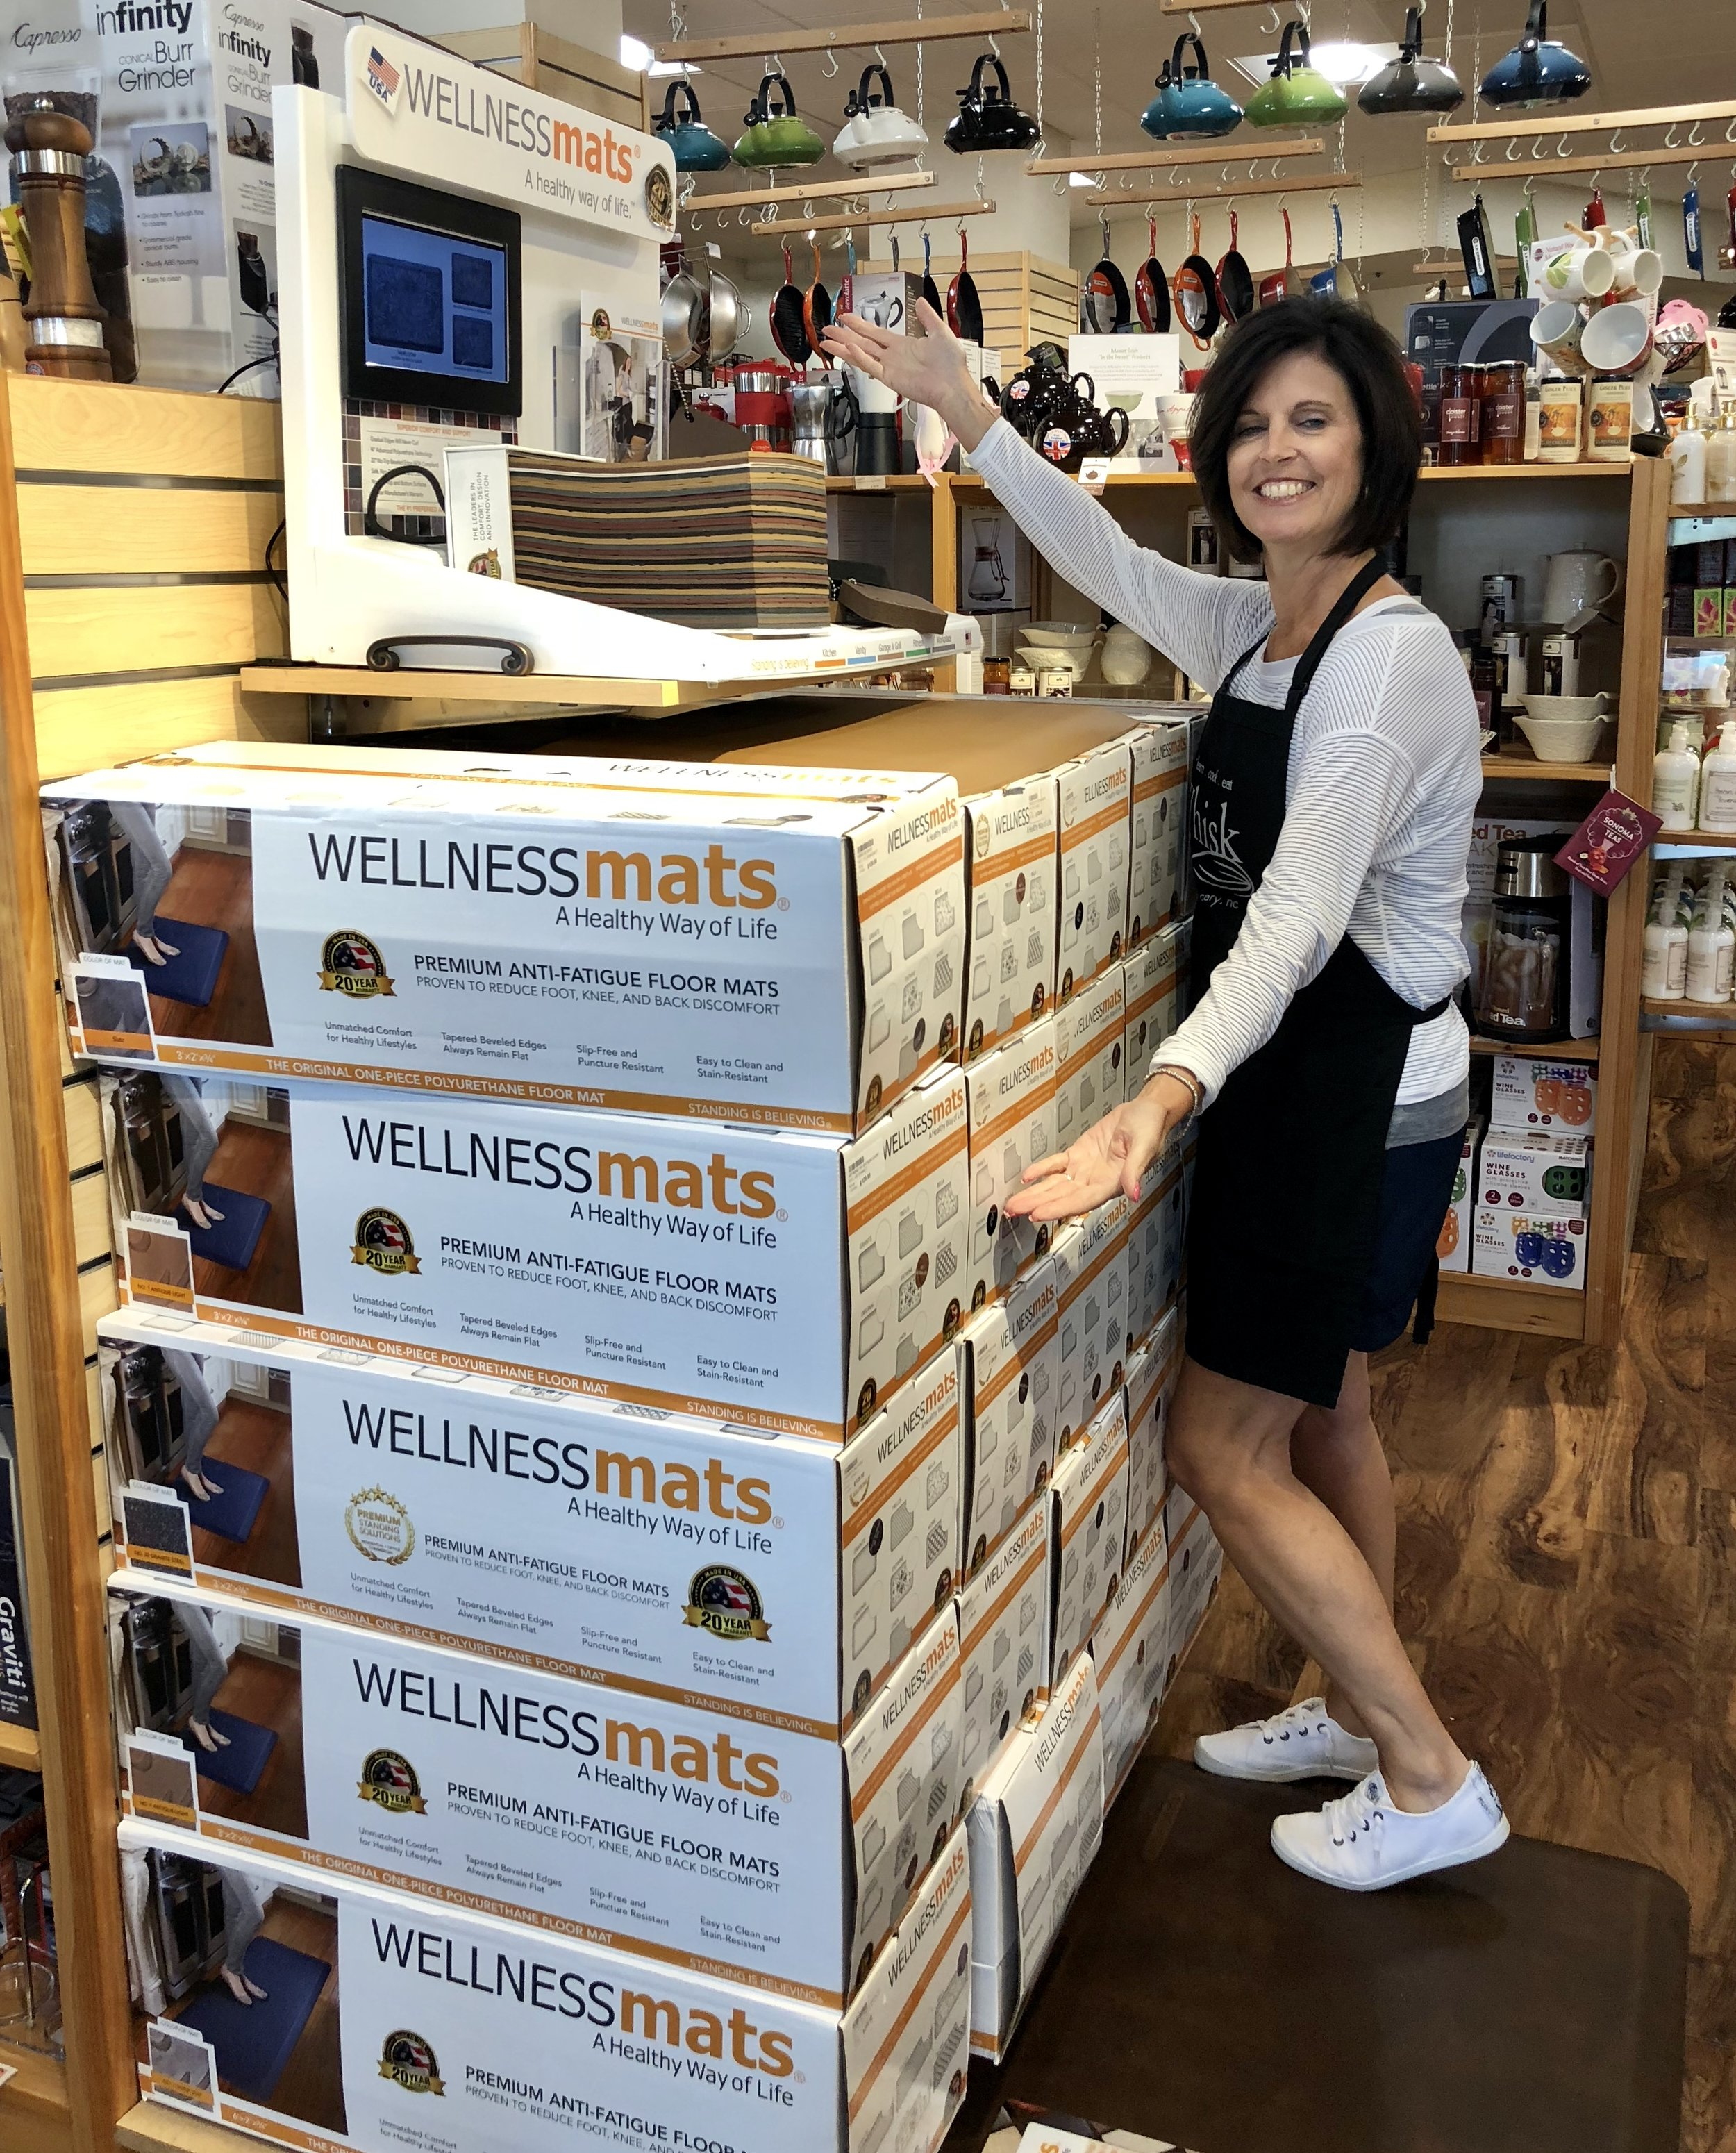 WellnessMats - Every home chef deserves to cook in comfort! Anti-fatigue mats are proven to reduce foot, knee and back pain.